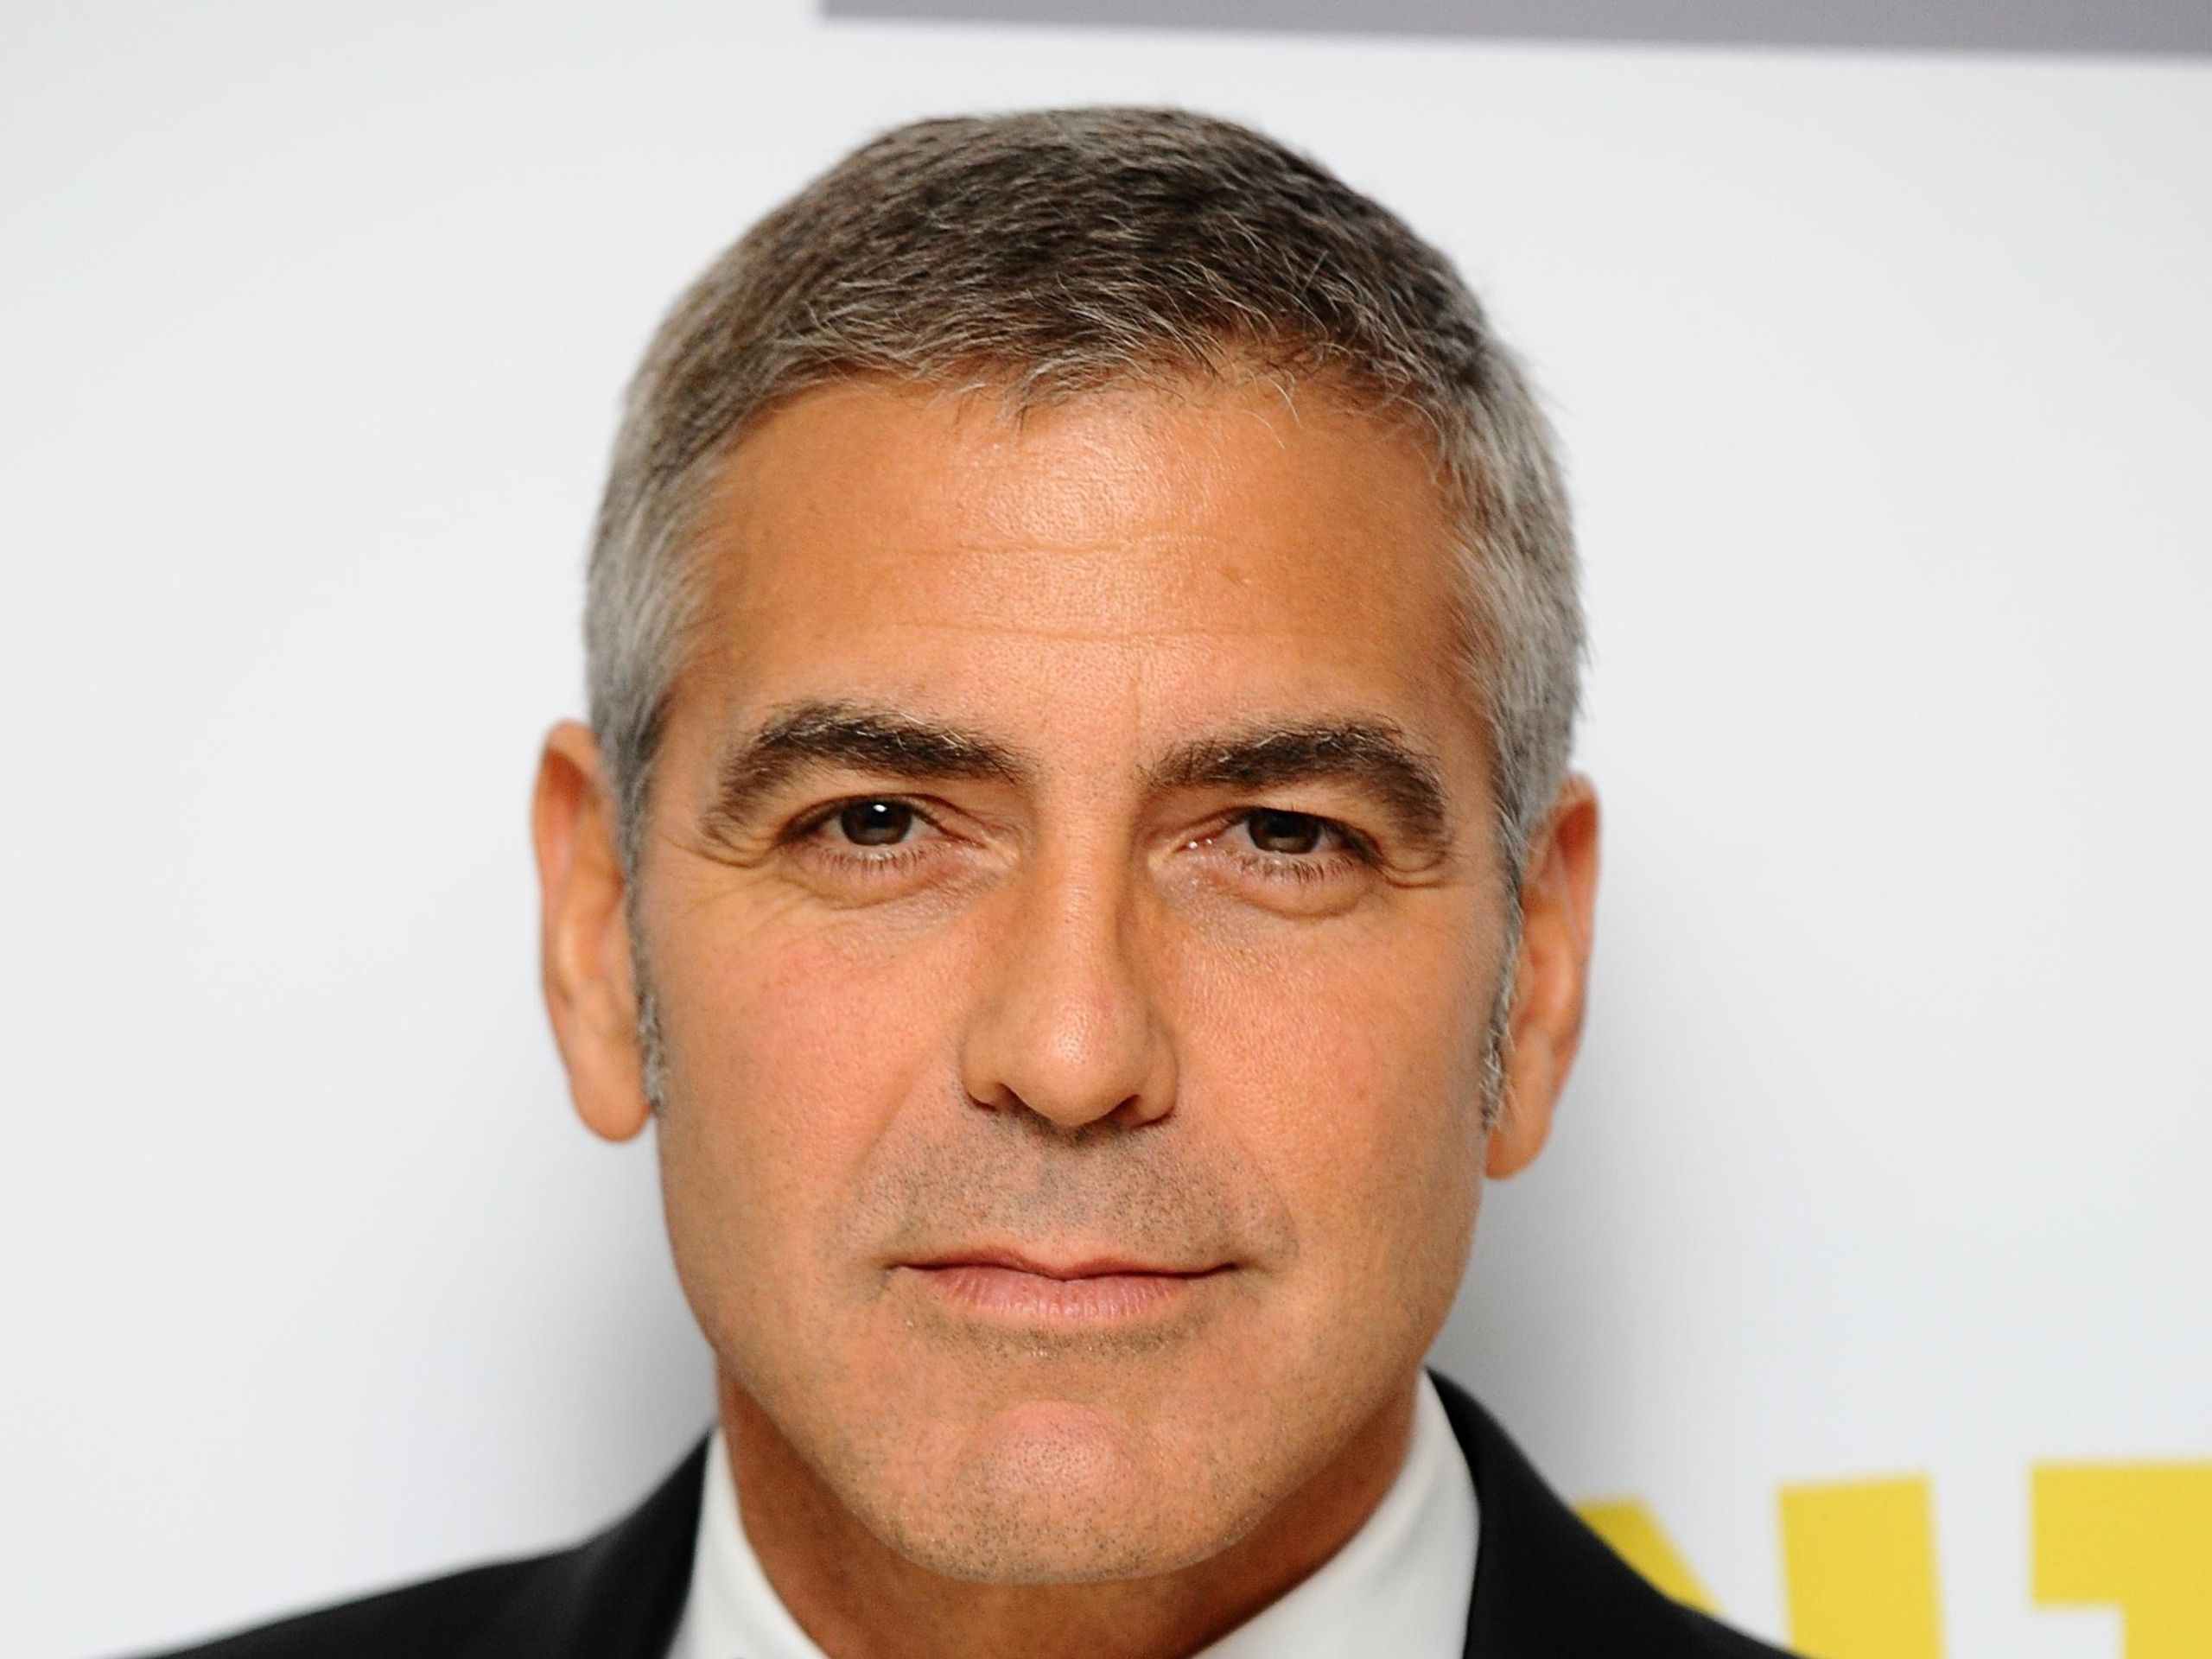 George Clooney Desktop Wallpapers for HD Widescreen and 2560x1920